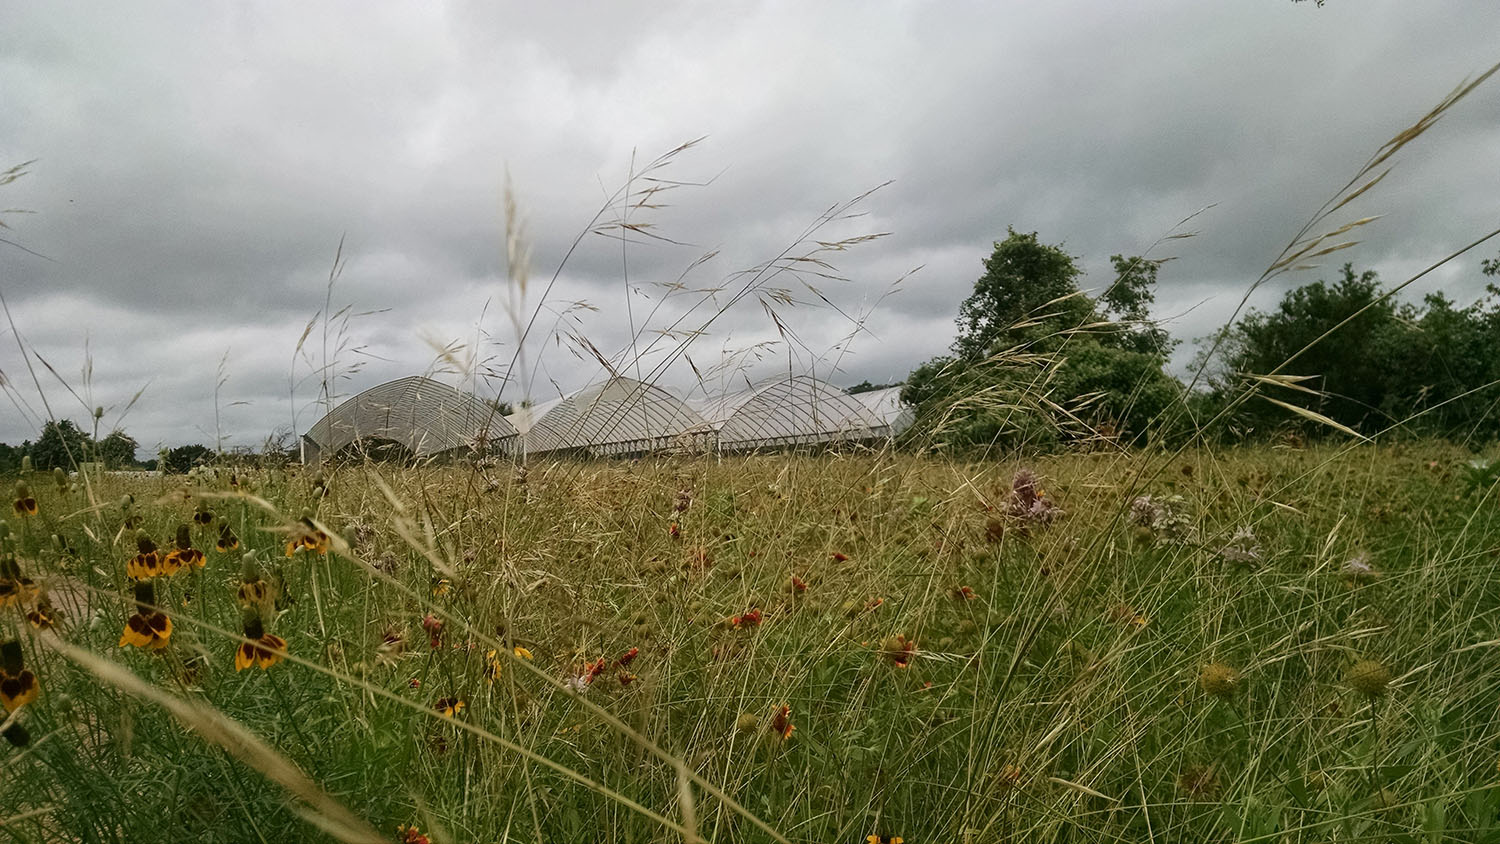 Foreground: grassland with native flowers. Background: three metal and tarp structures with dark clouds overhead.